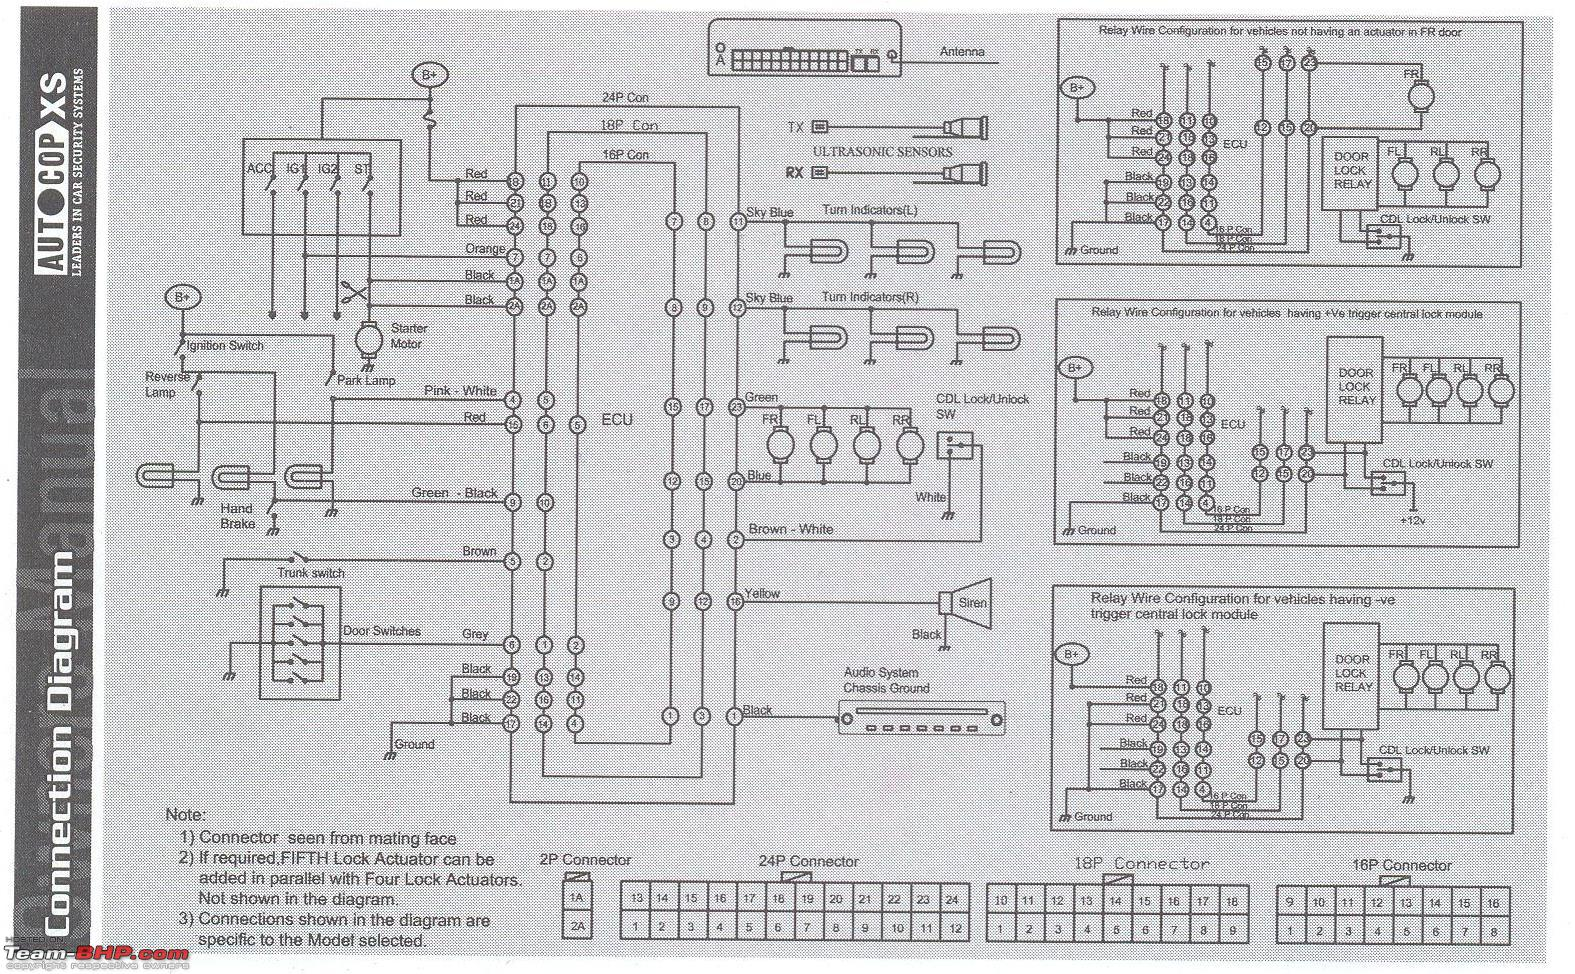 hyundai wiring diagrams automotive hyundai excel x wiring diagram wiring  diagrams and schematics